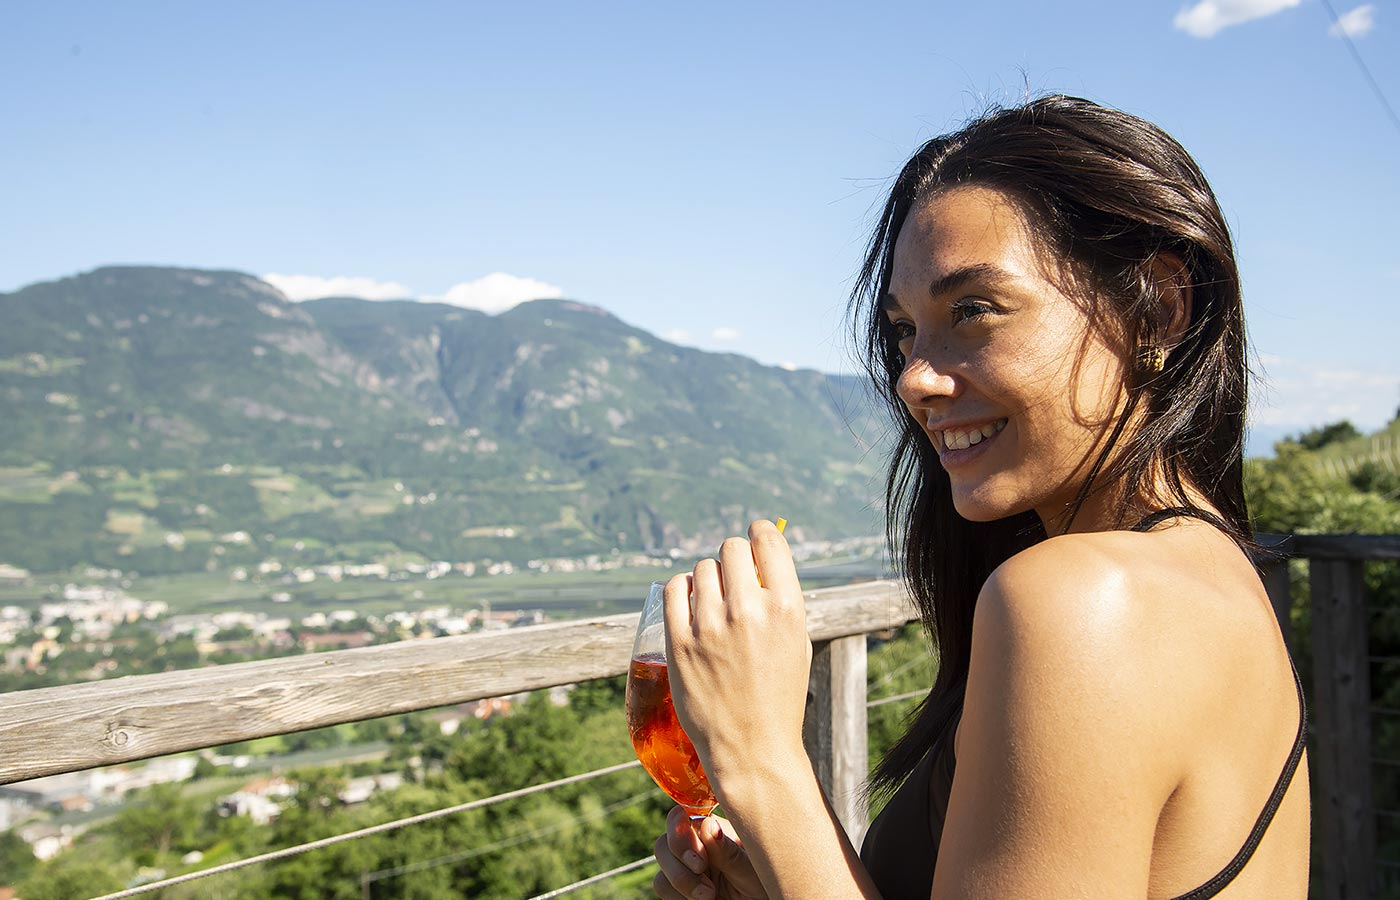 A girl enjoys an aperitif on the terrace of the Residence Aqualis